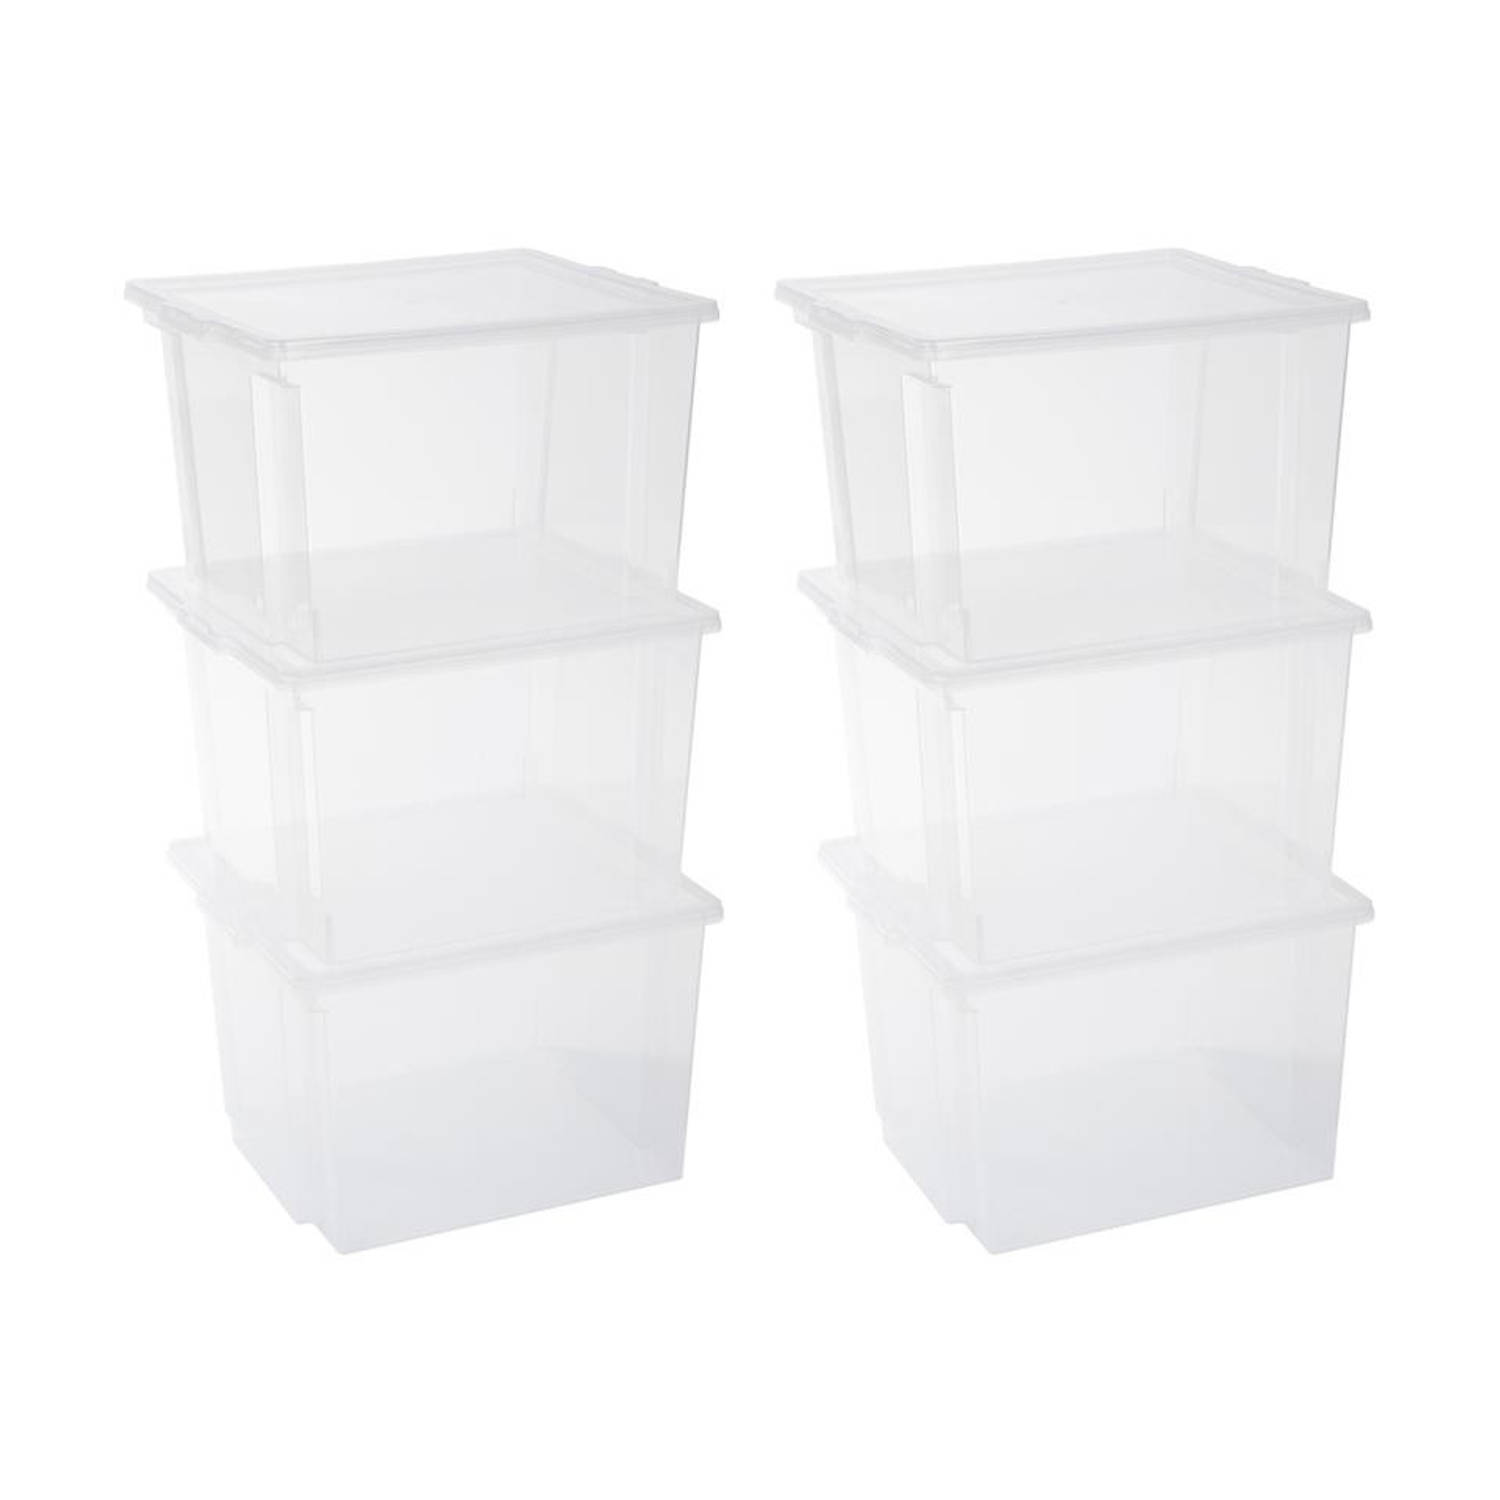 Iris Storage Box opbergbox 30 liter transparant set van 6